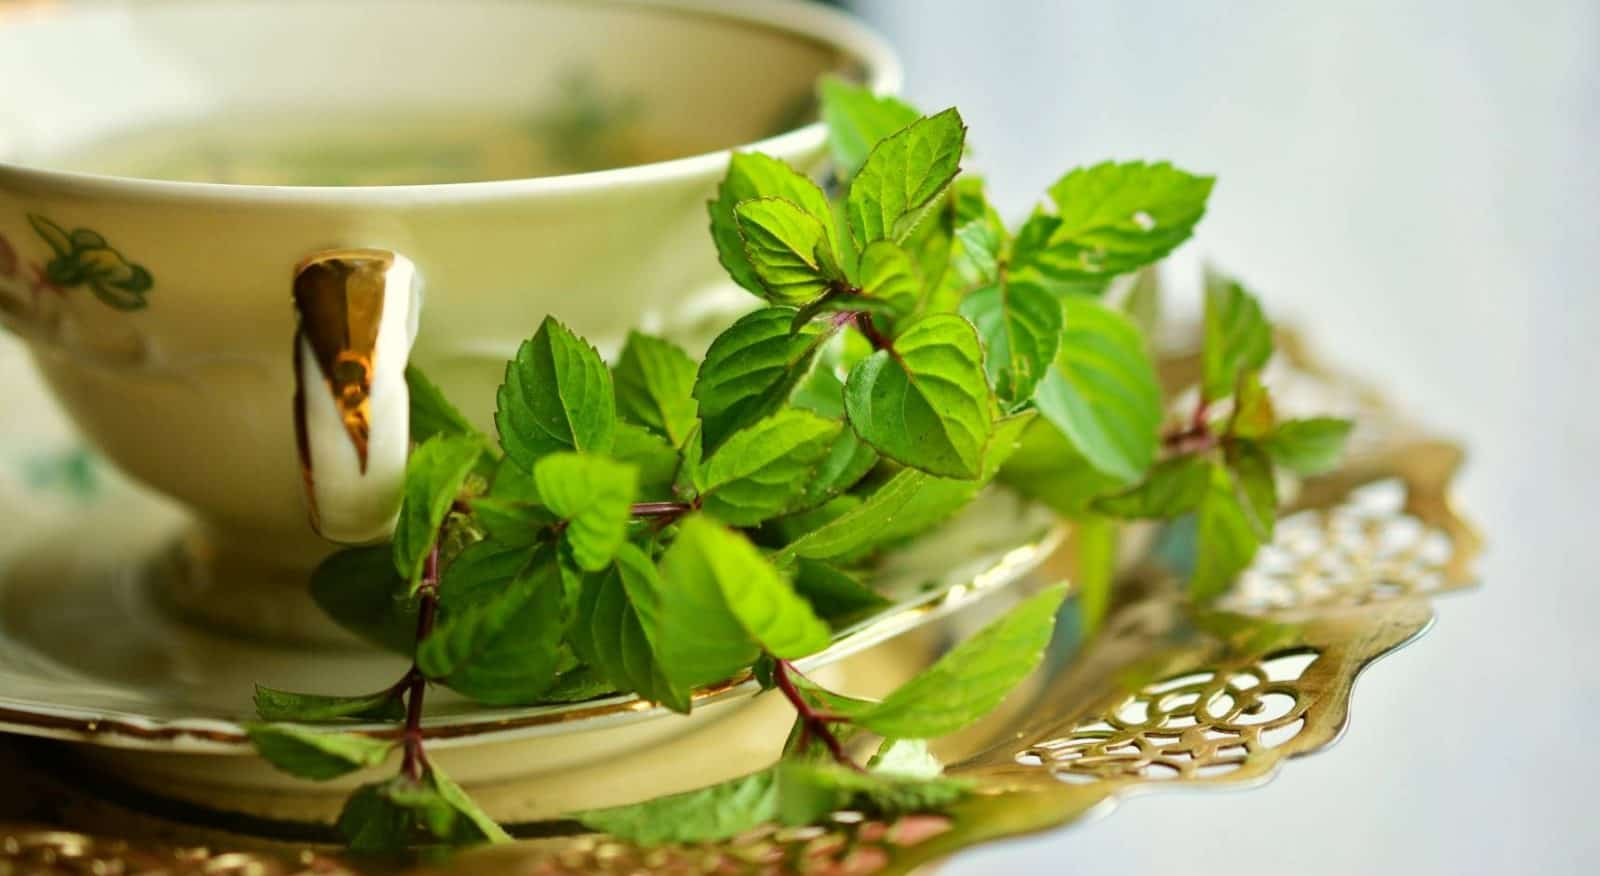 Natural Scents of Herbs